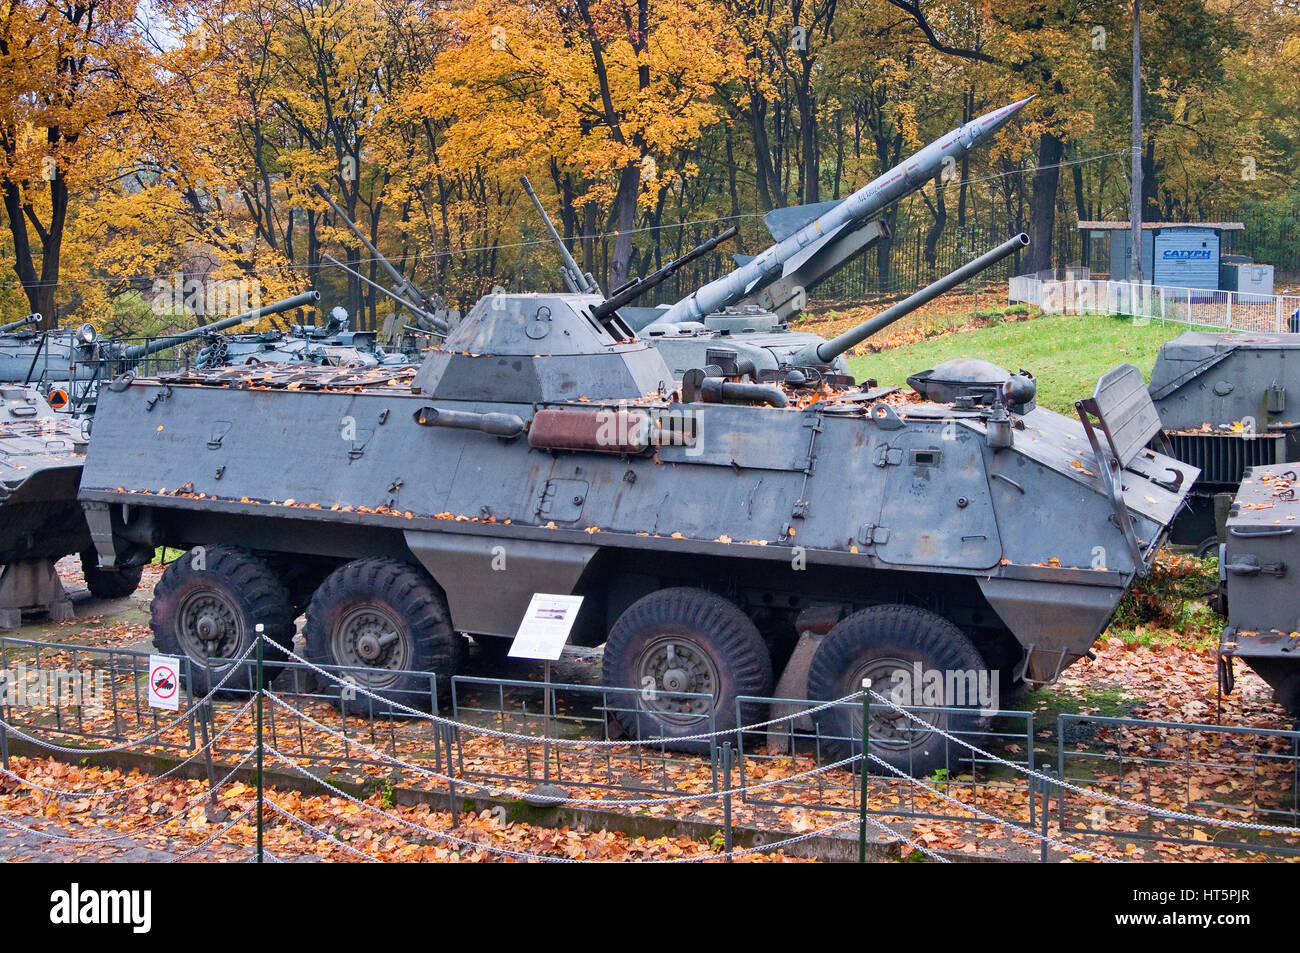 OT-64 SKOT-2A, wheeled amphibious armored personnel carrier (8x8), developed jointly by Poland and Czechoslovakia, - Stock Image